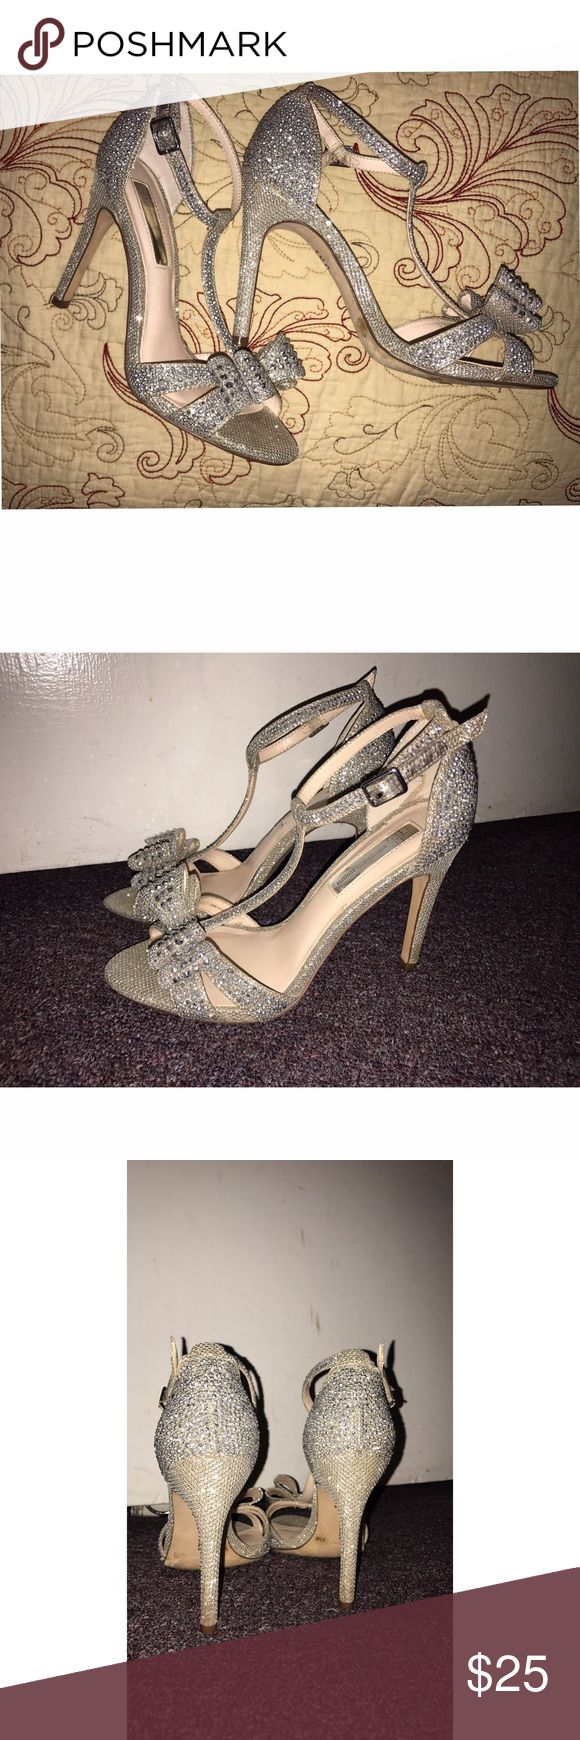 Sparkly bow heels For any special occasion Shoes Heels